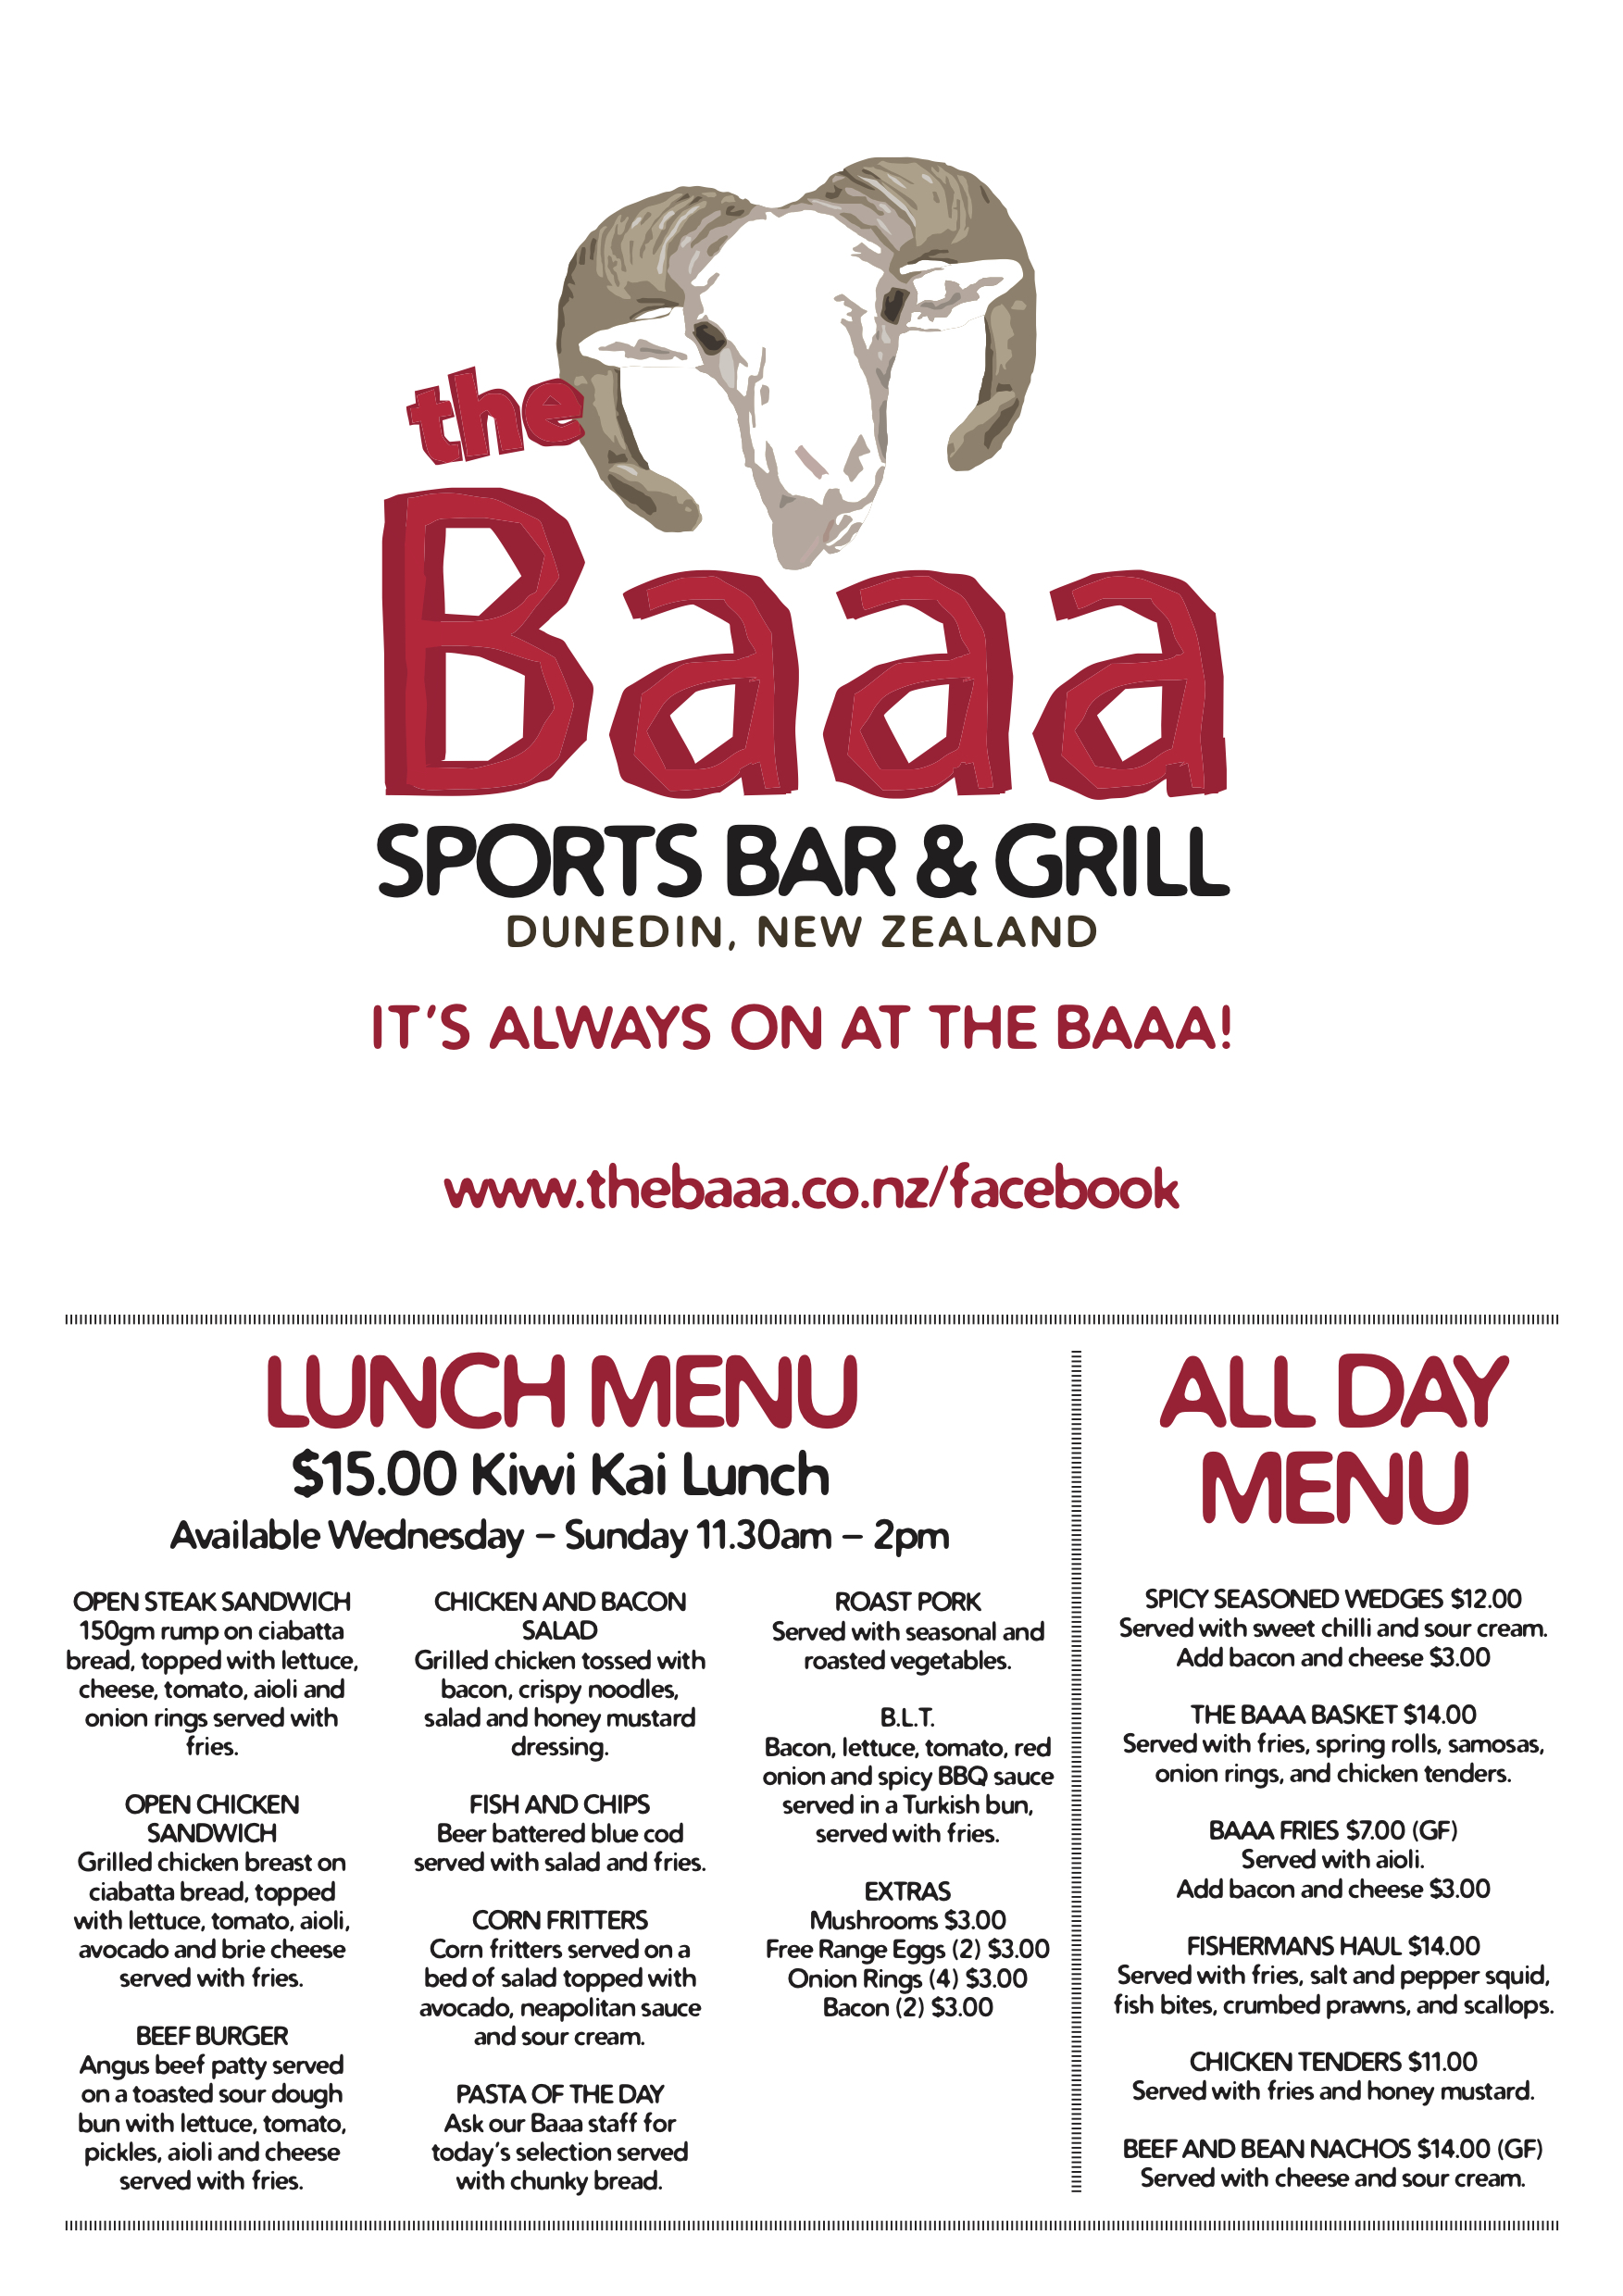 Lunch Menu 2019, The Baaa Sports Bar and Grill, 746 Great King Street, Dunedin 03 477 7718